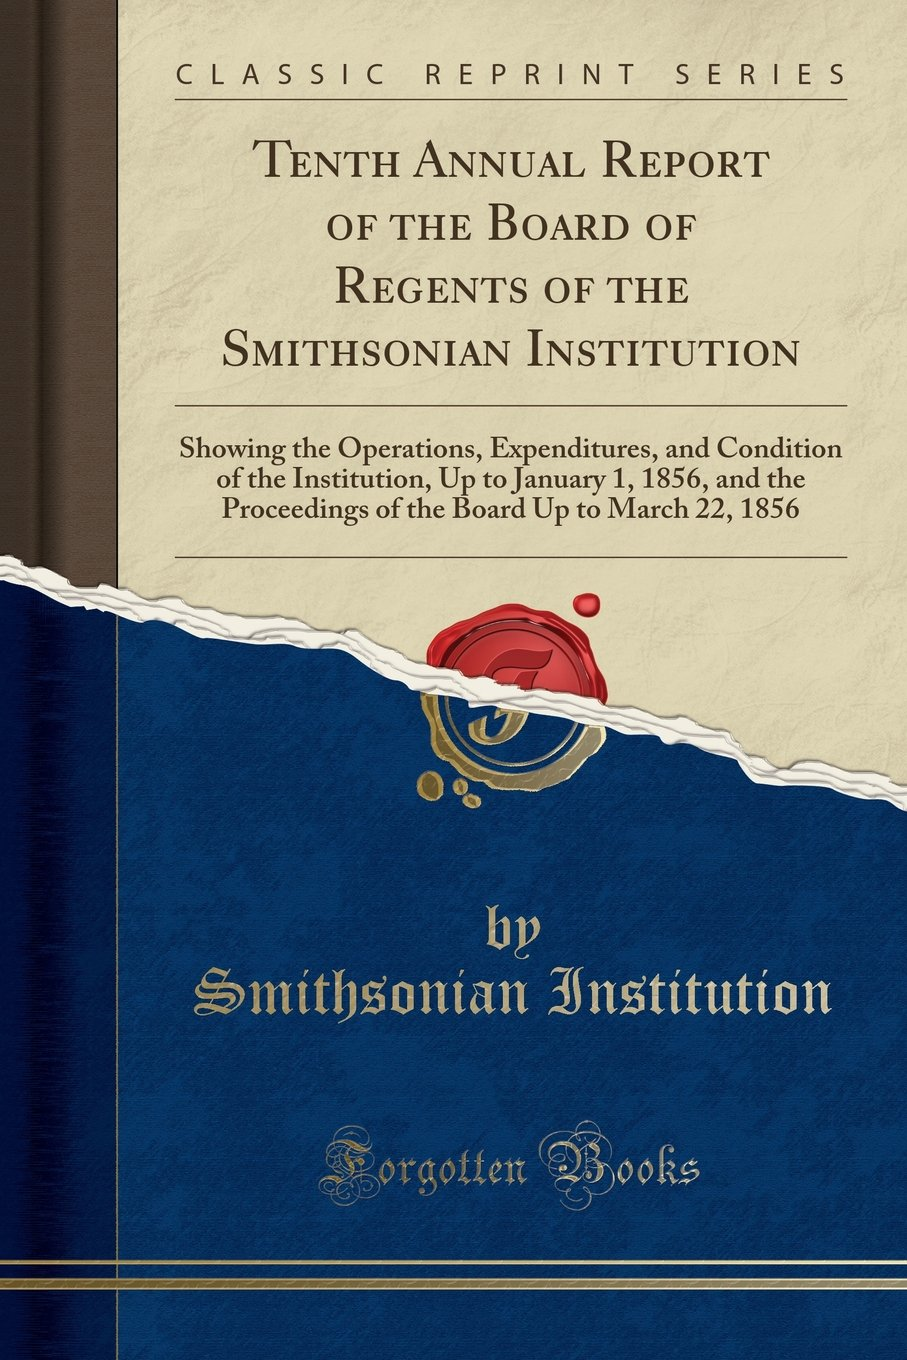 Tenth Annual Report of the Board of Regents of the Smithsonian Institution: Showing the Operations, Expenditures, and Condition of the Institution, Up ... Board Up to March 22, 1856 (Classic Reprint) ebook